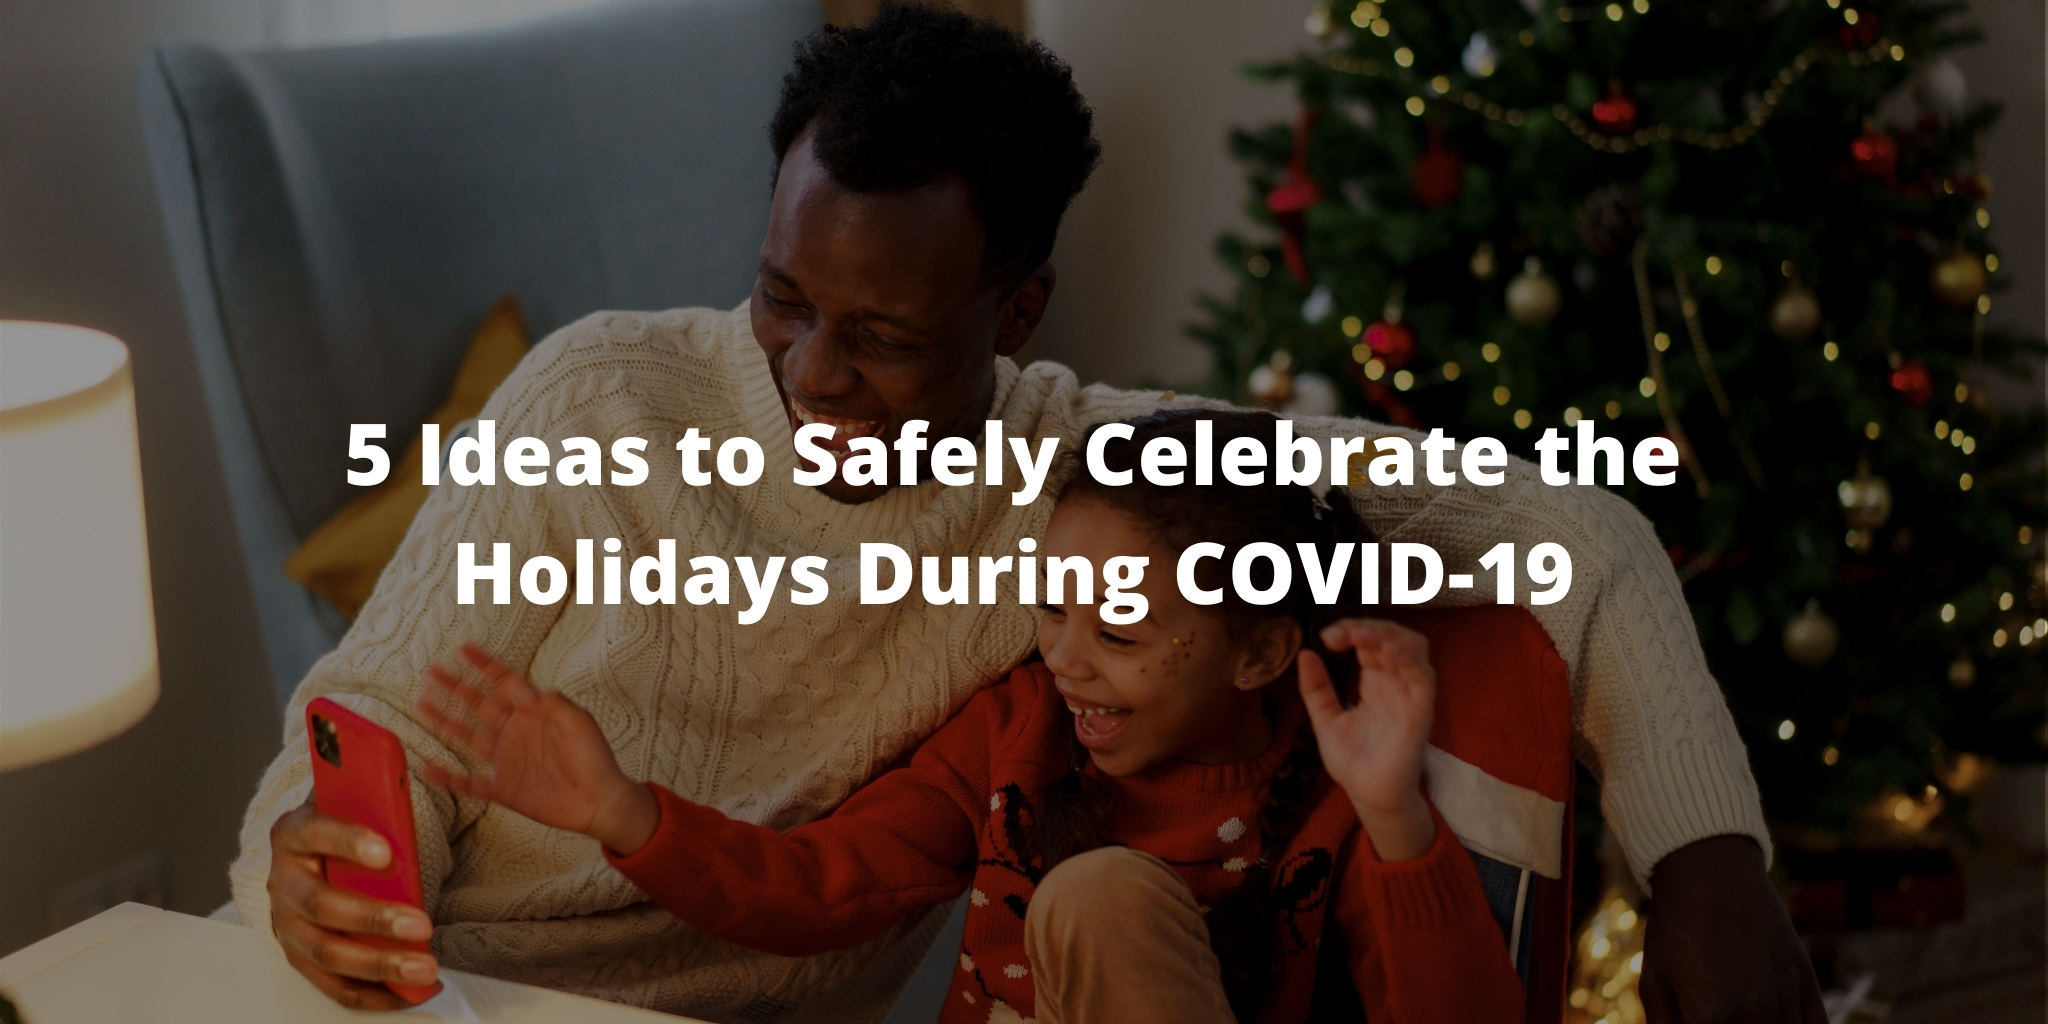 5 Ideas to Safely Celebrate the Holidays During COVID-19